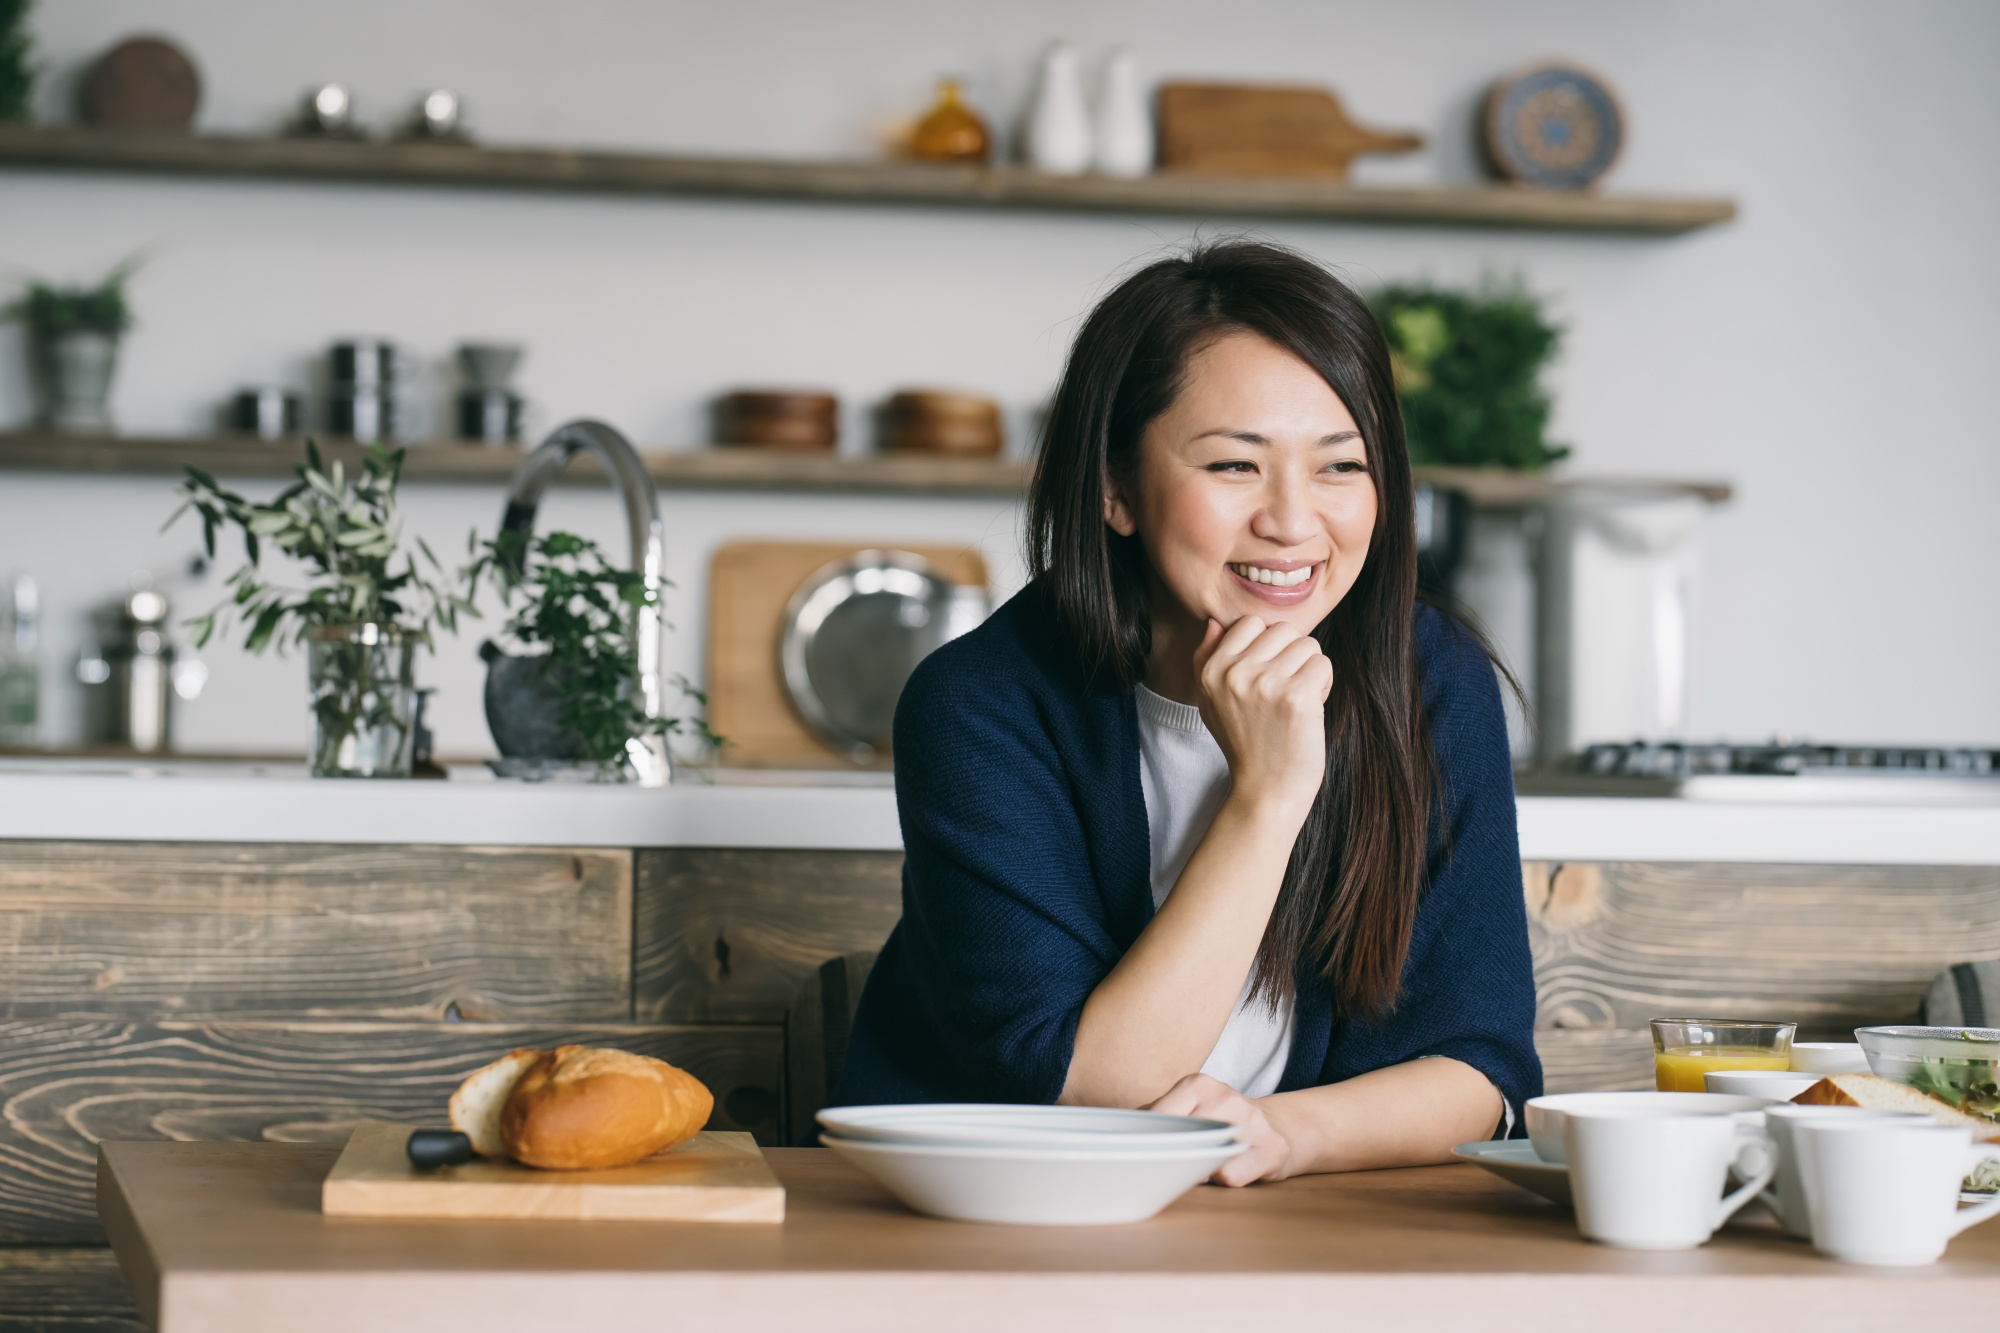 intermittent fasting & intuitive fasting, Asian woman at counter in navy cardigan